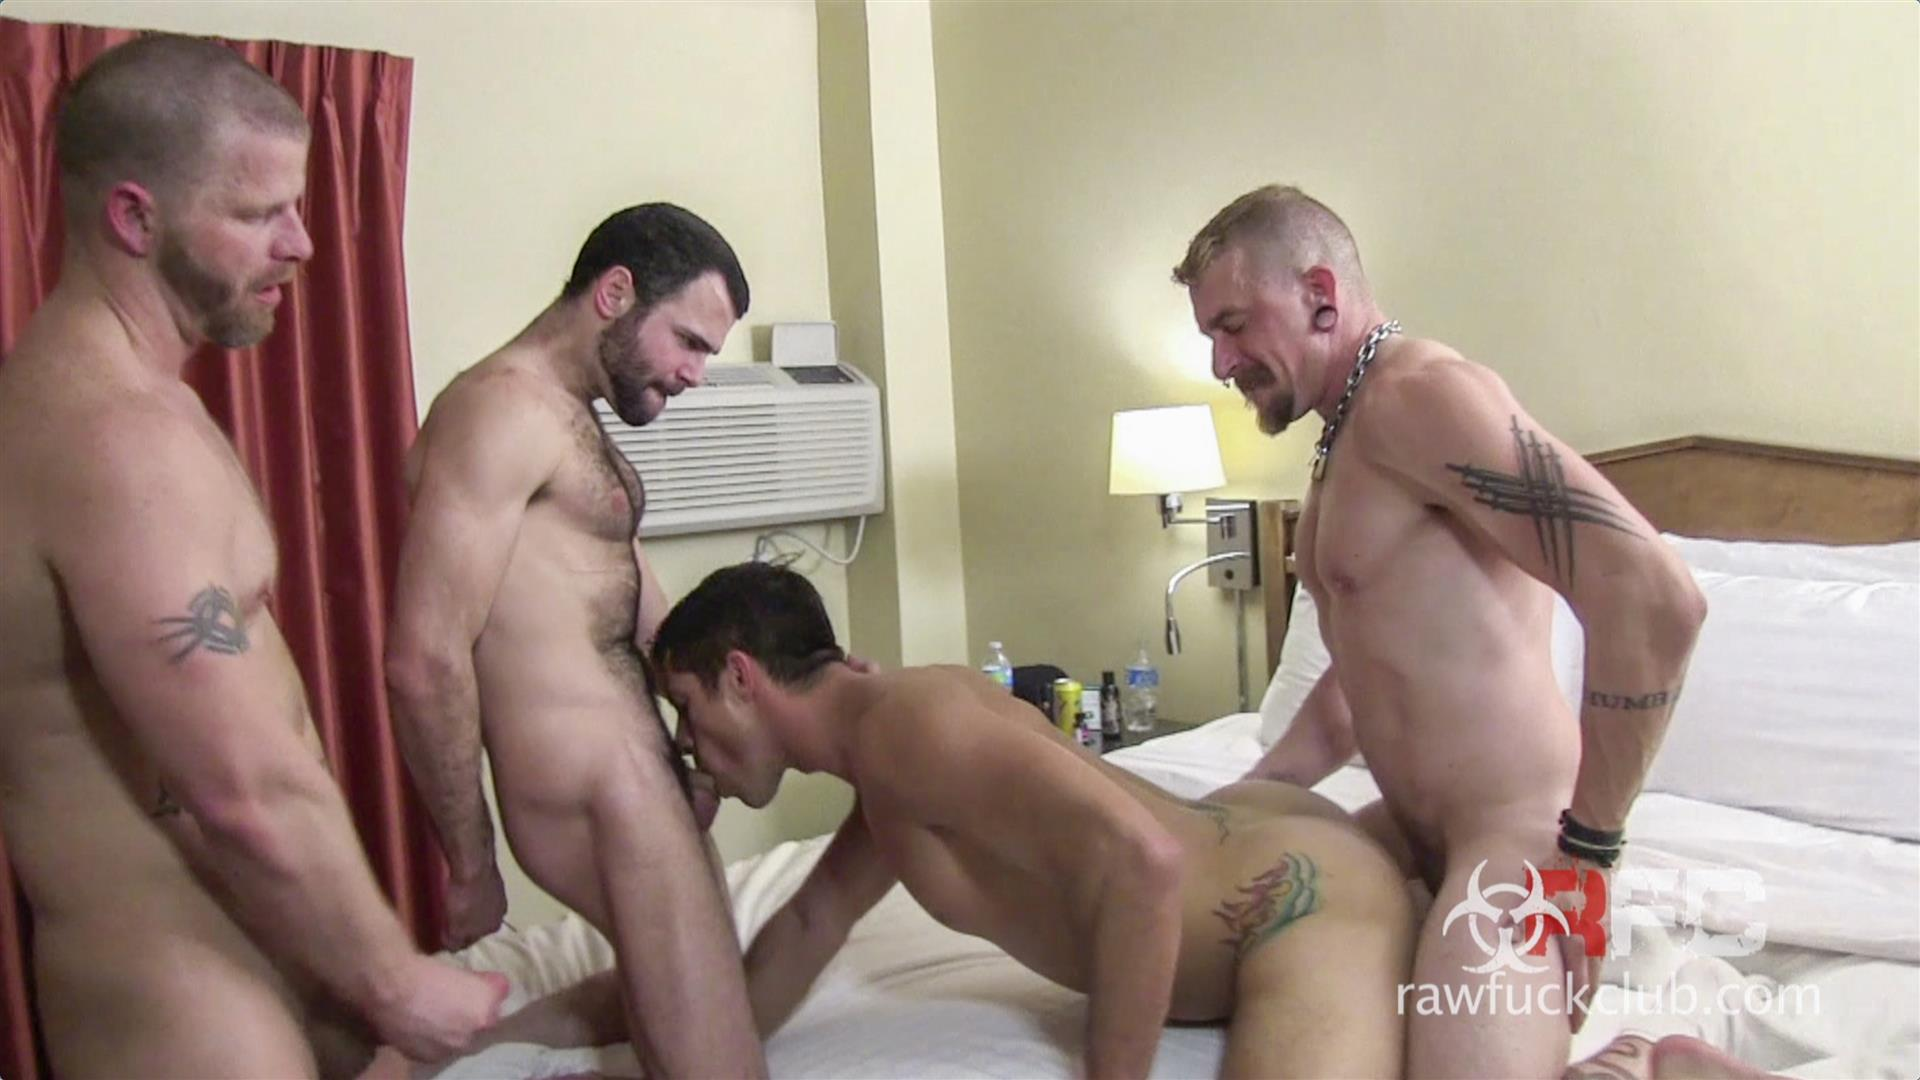 Raw Fuck Club Dylan Saunders and Dusty Williams and Jeff Kendall and Jeremy Stevens BBBH Amateur Gay Porn 07